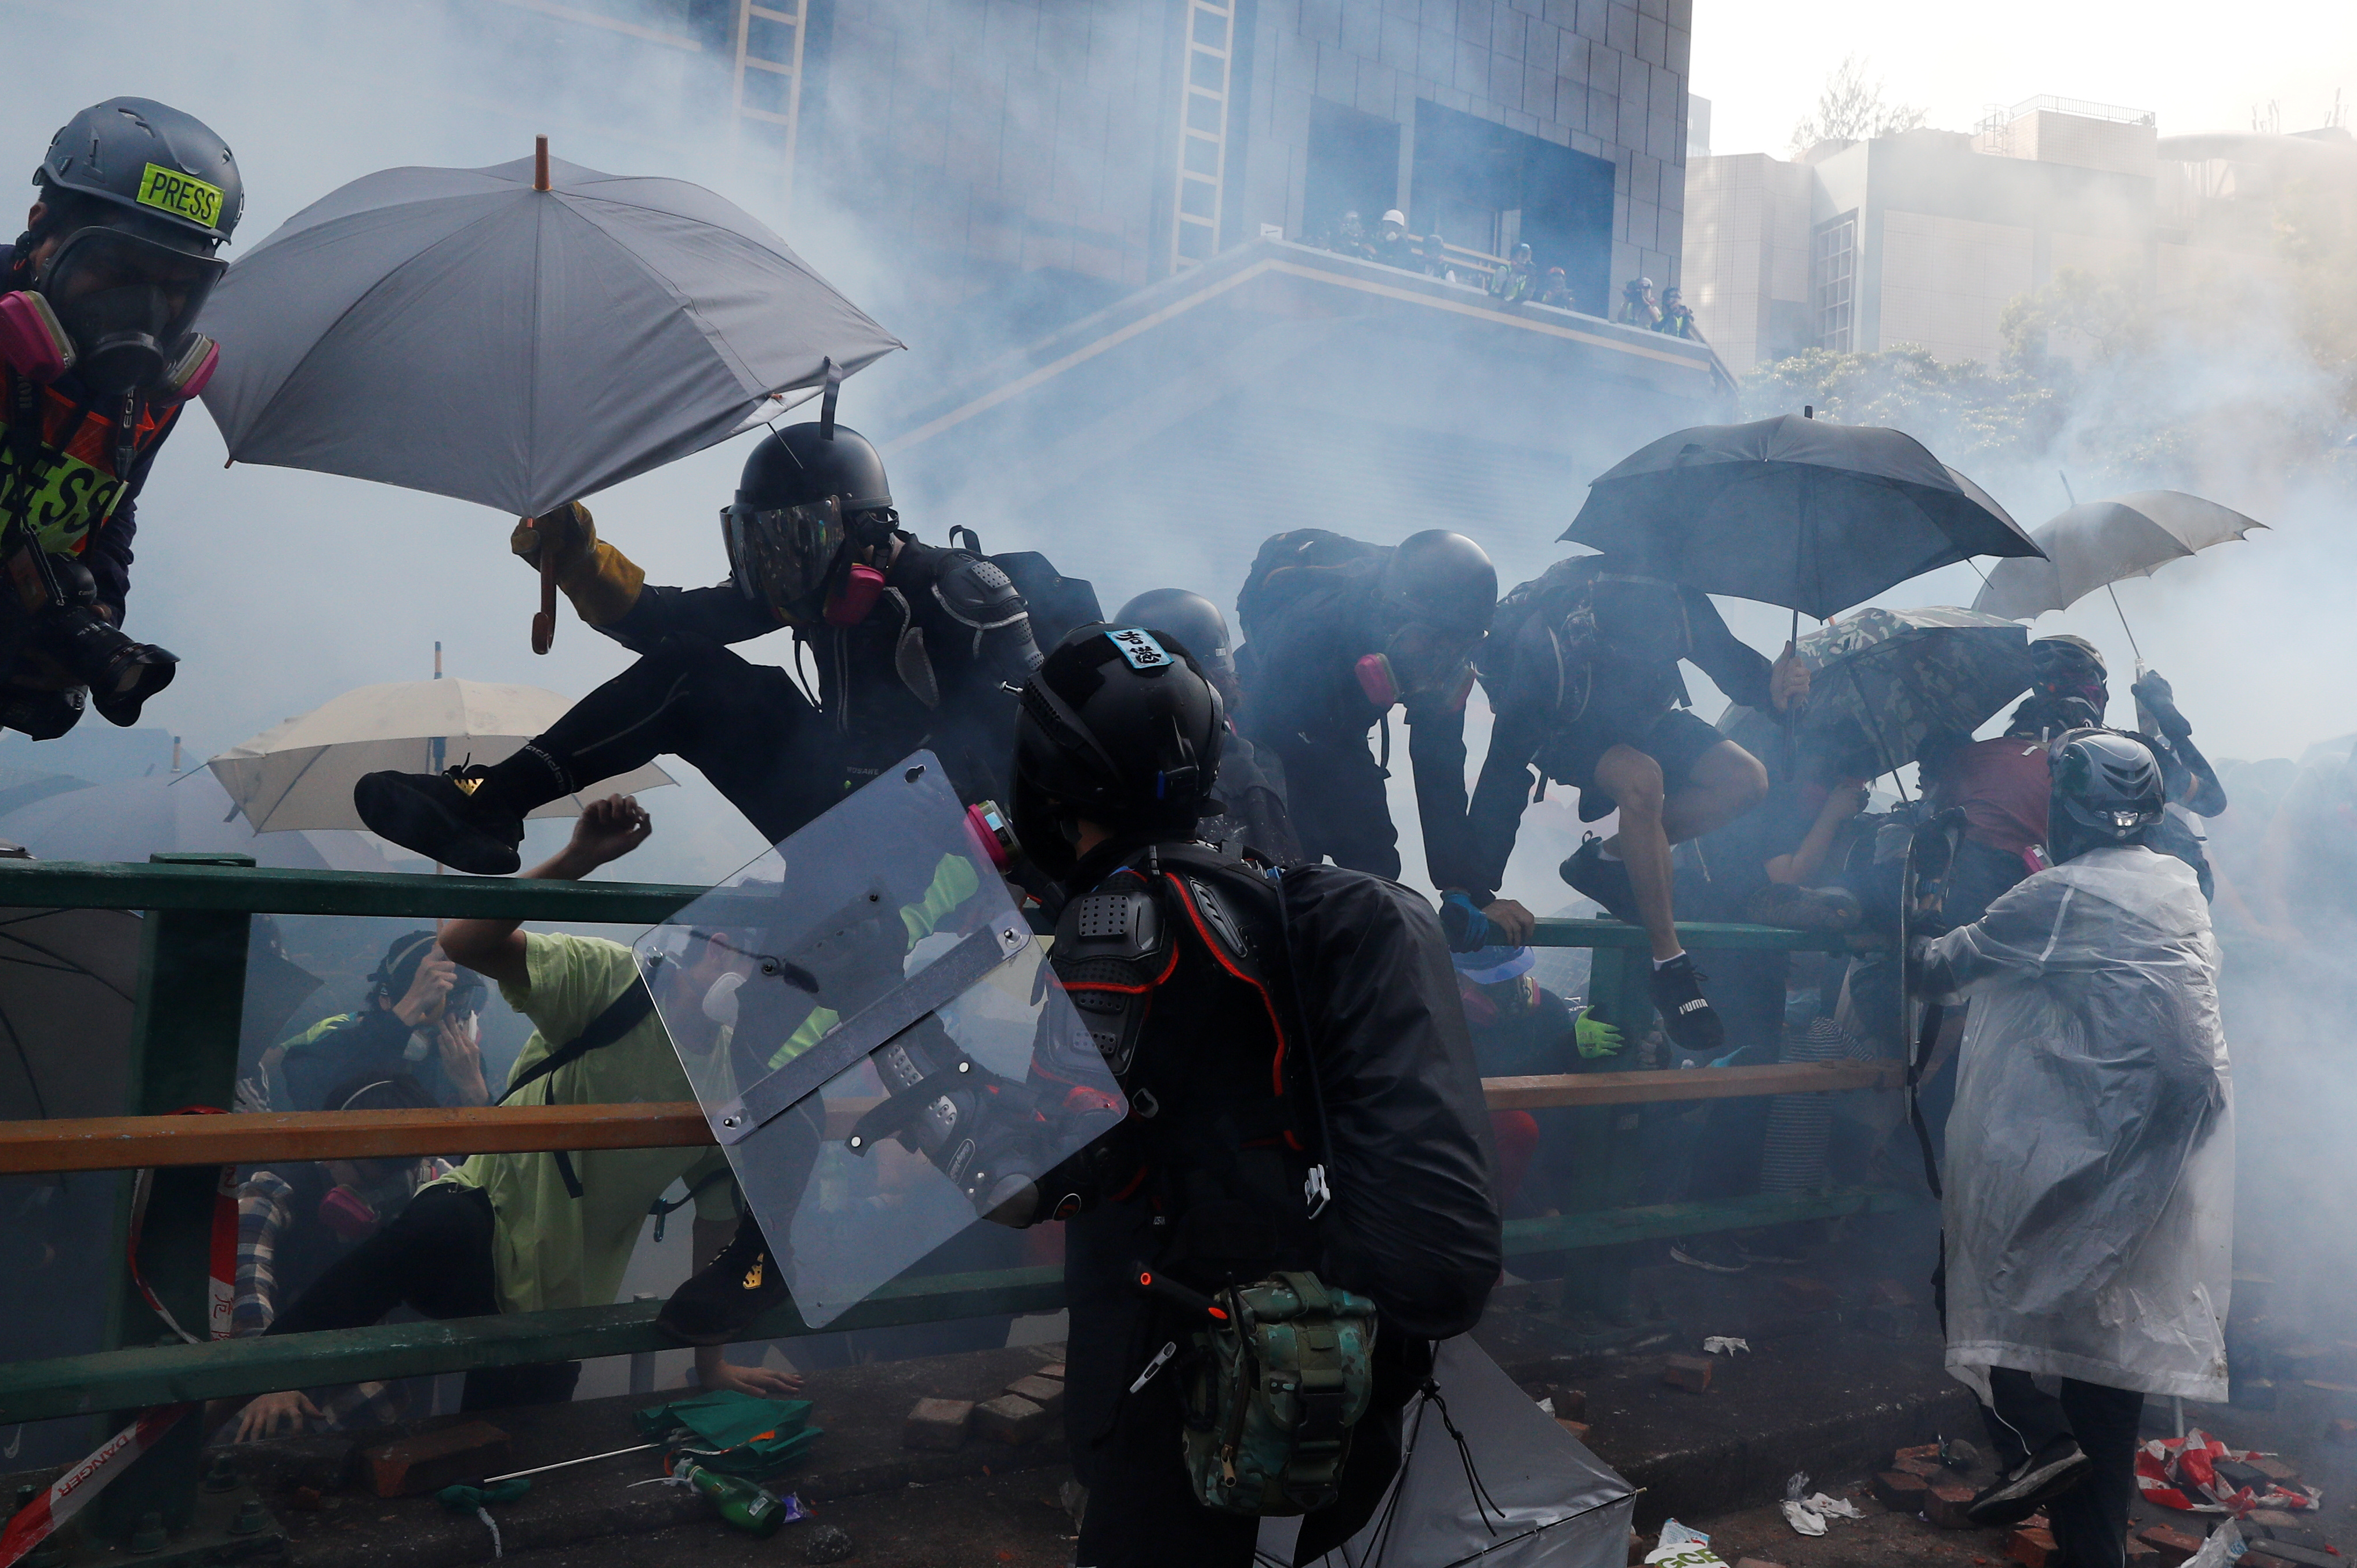 Protesters attempt to escape from tear gas while trying to leave the campus of Hong Kong Polytechnic University (PolyU) during clashes with police in Hong Kong, China November 18, 2019.